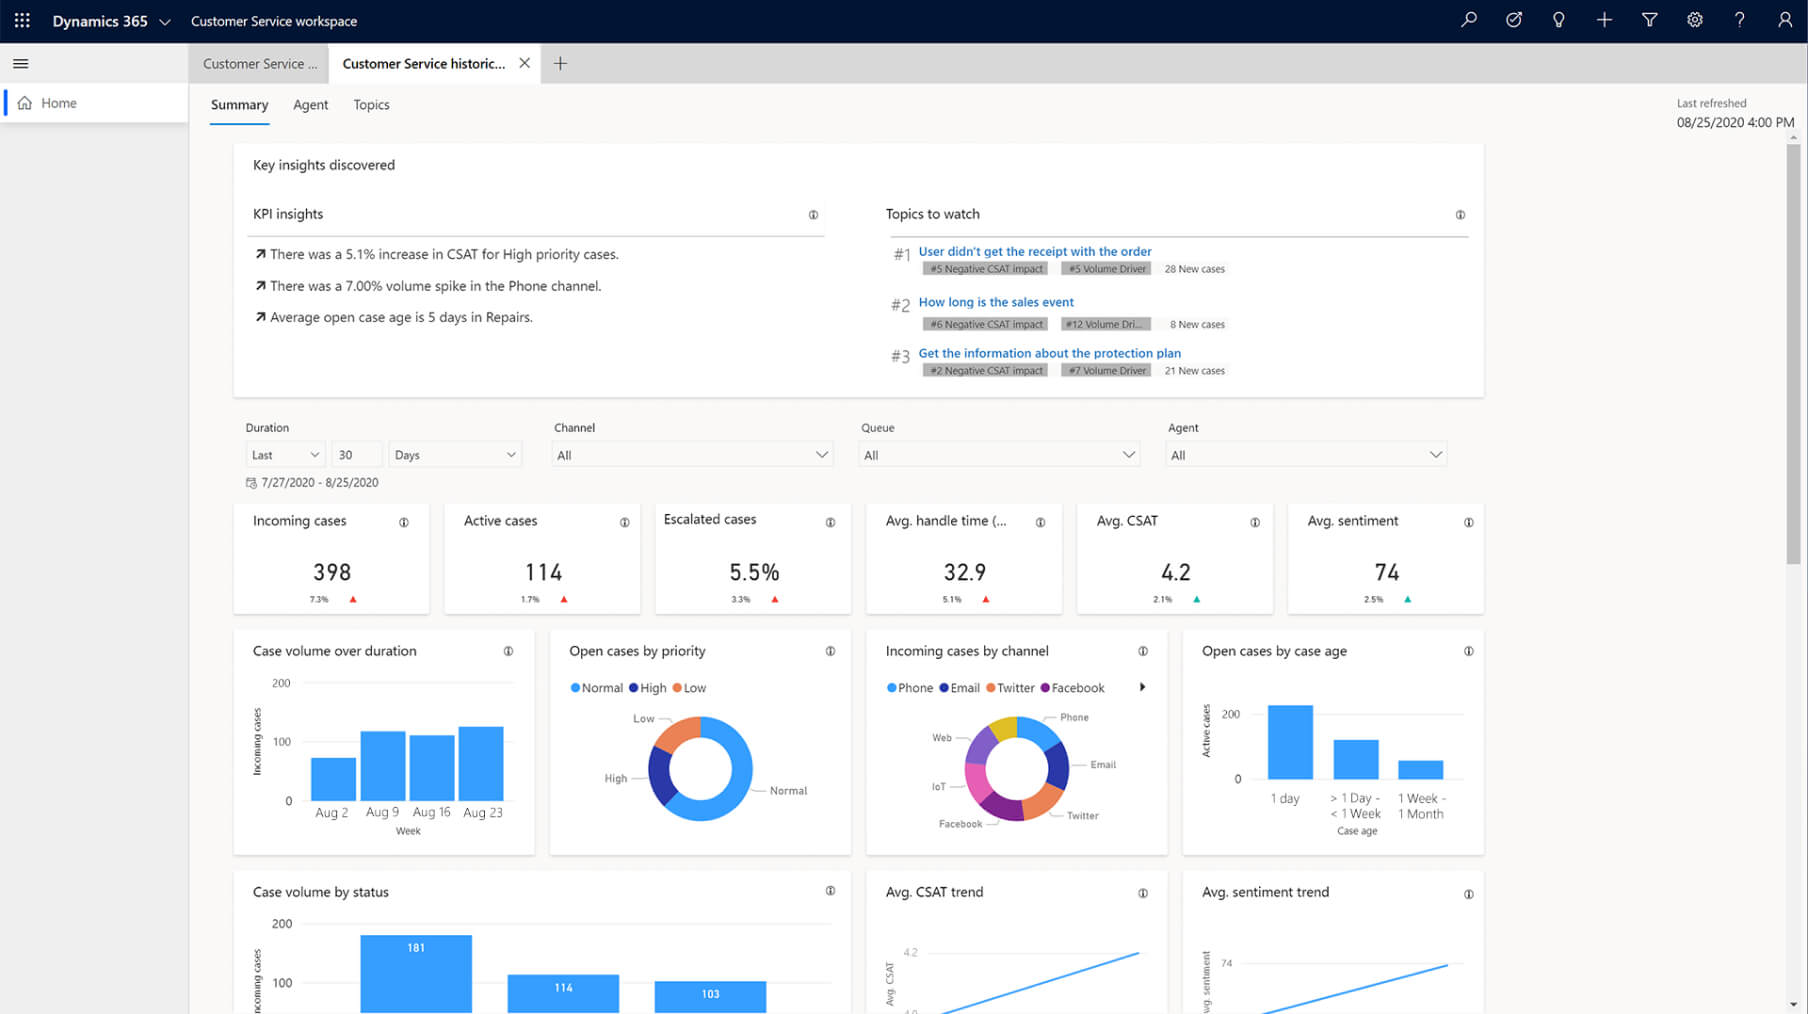 Dynamics 365 Customer Service